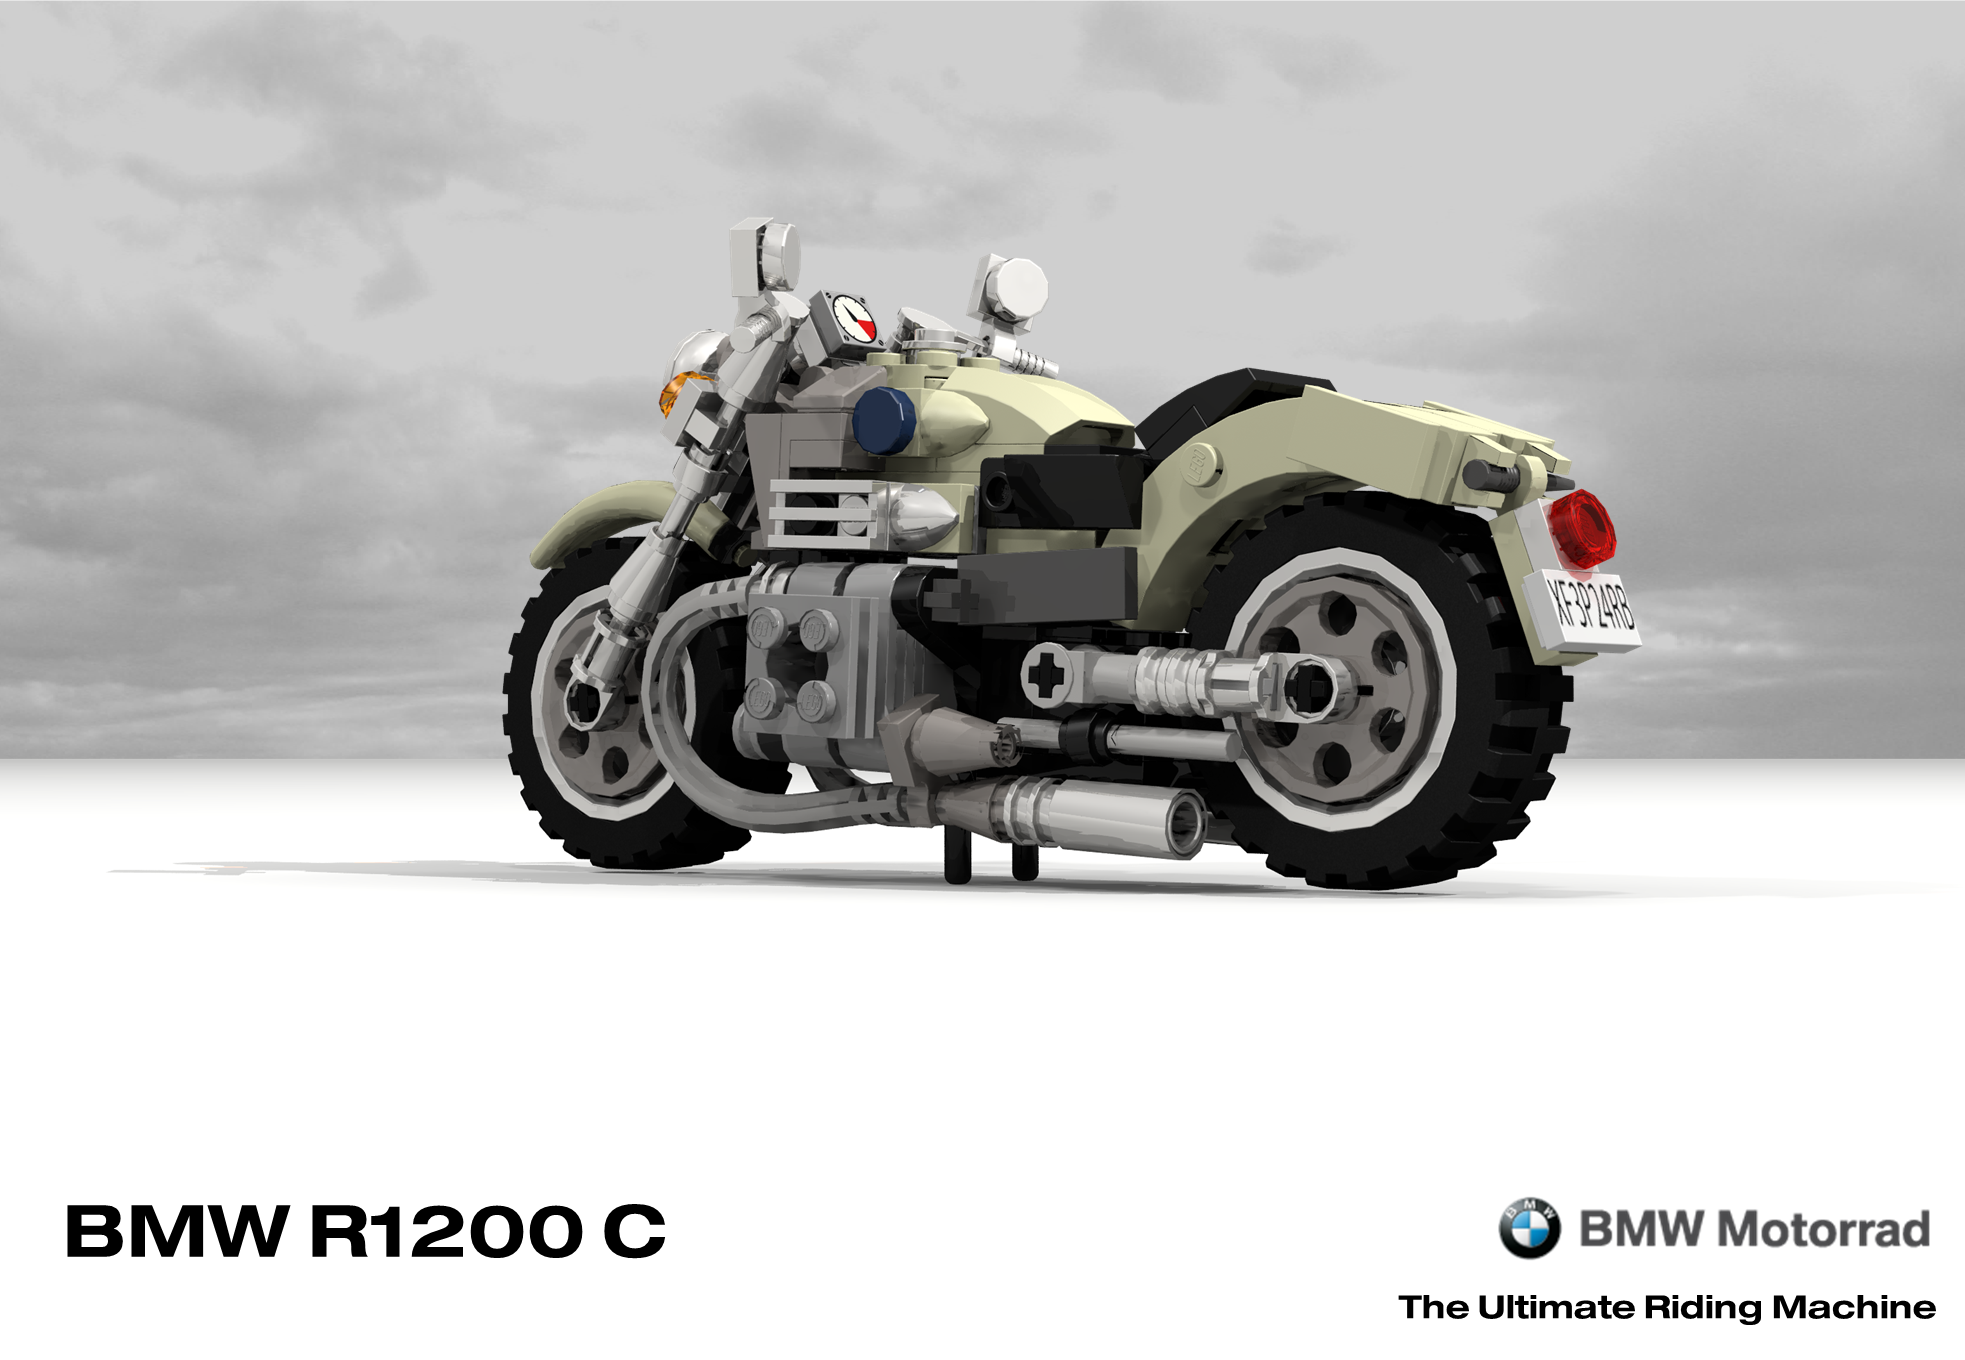 bmw_r1200c_motorcycle_05.png